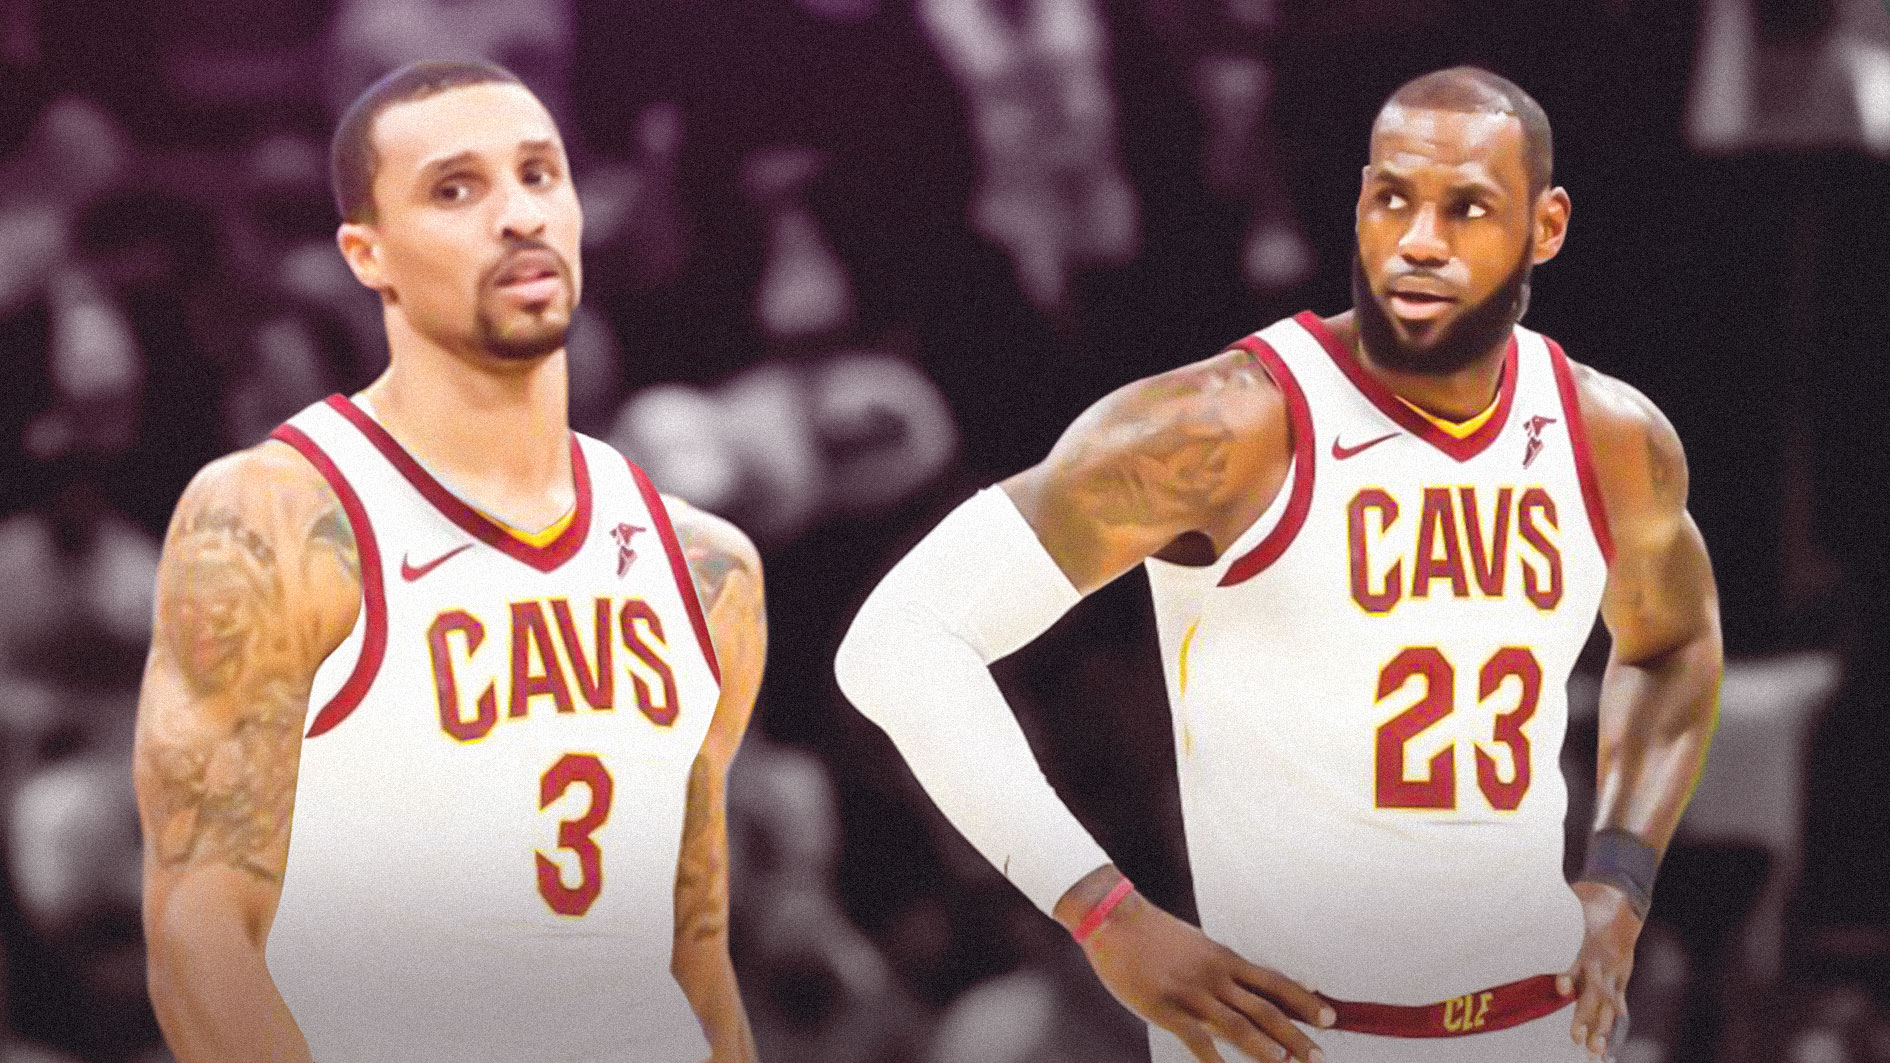 Cavs news George Hill trade was nearly completed 2 weeks ago